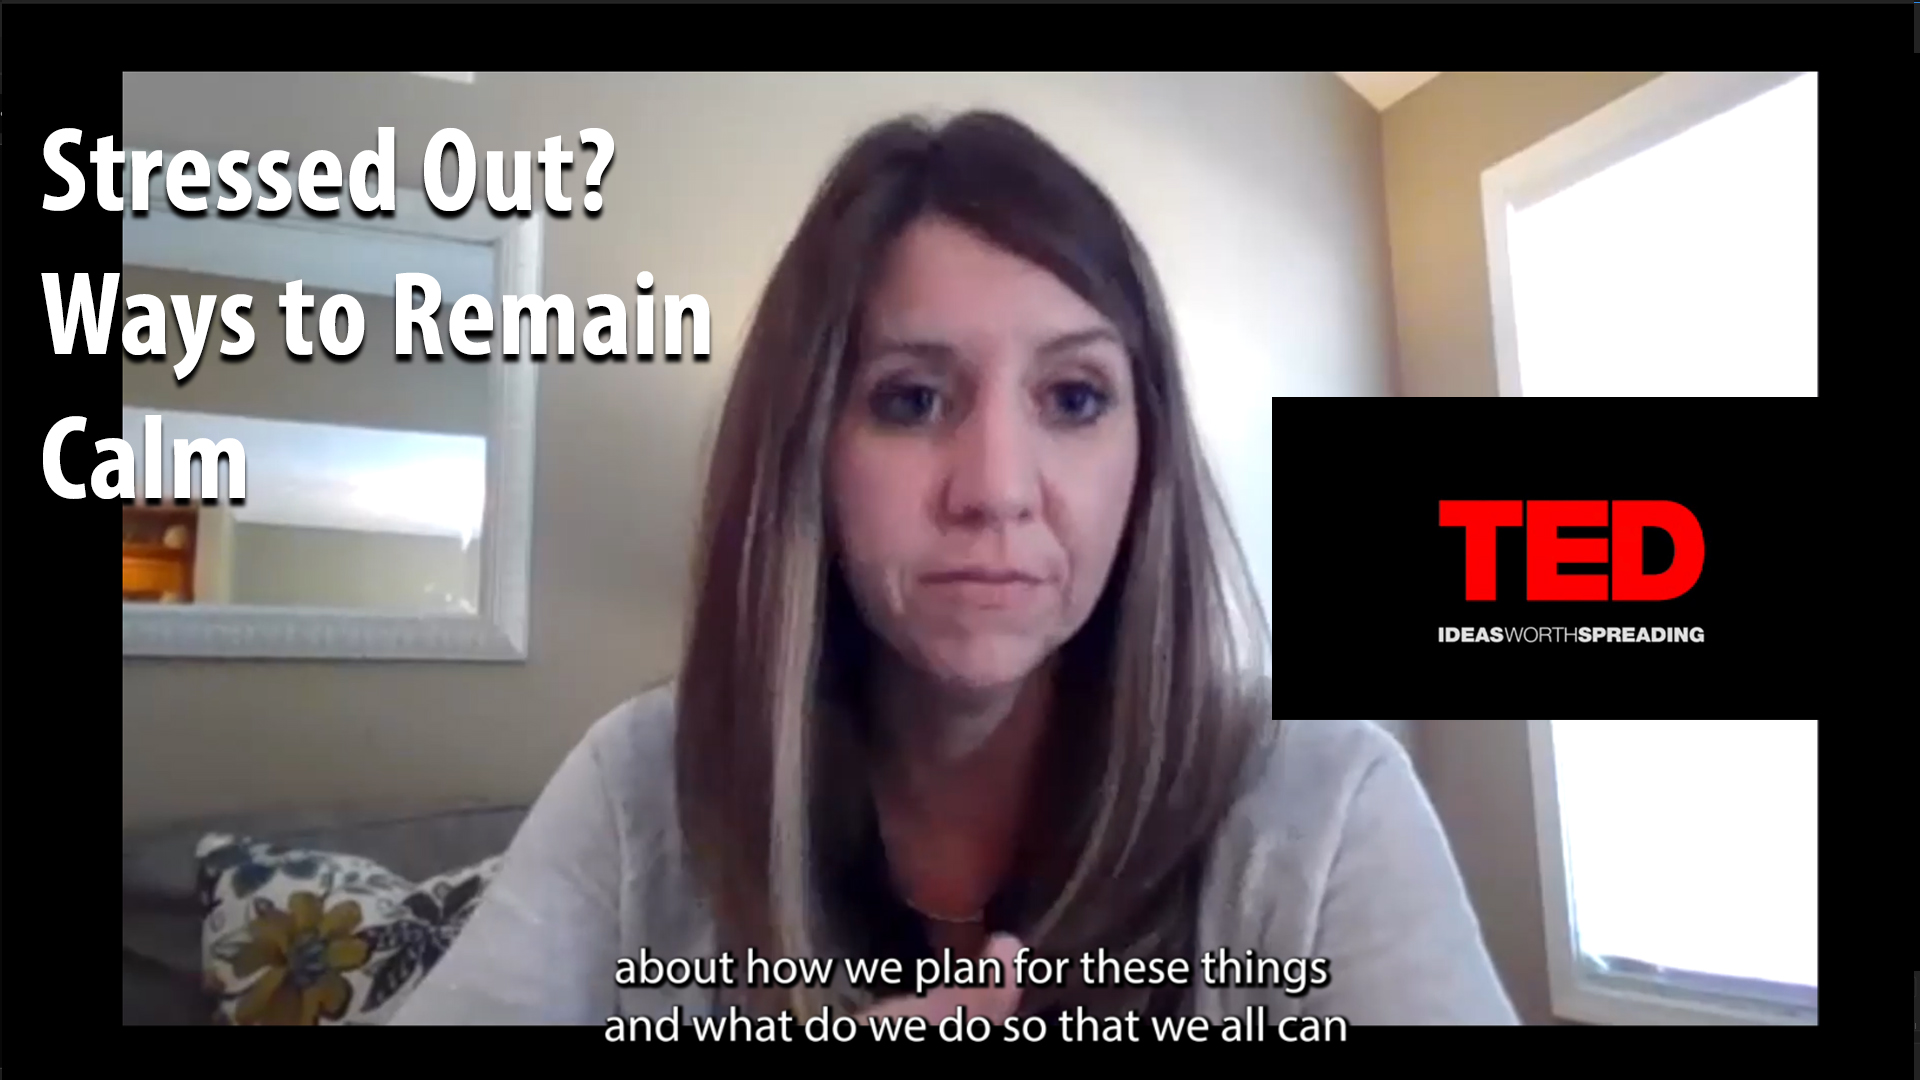 TED Talk: Stressed Out - ways to remain calm